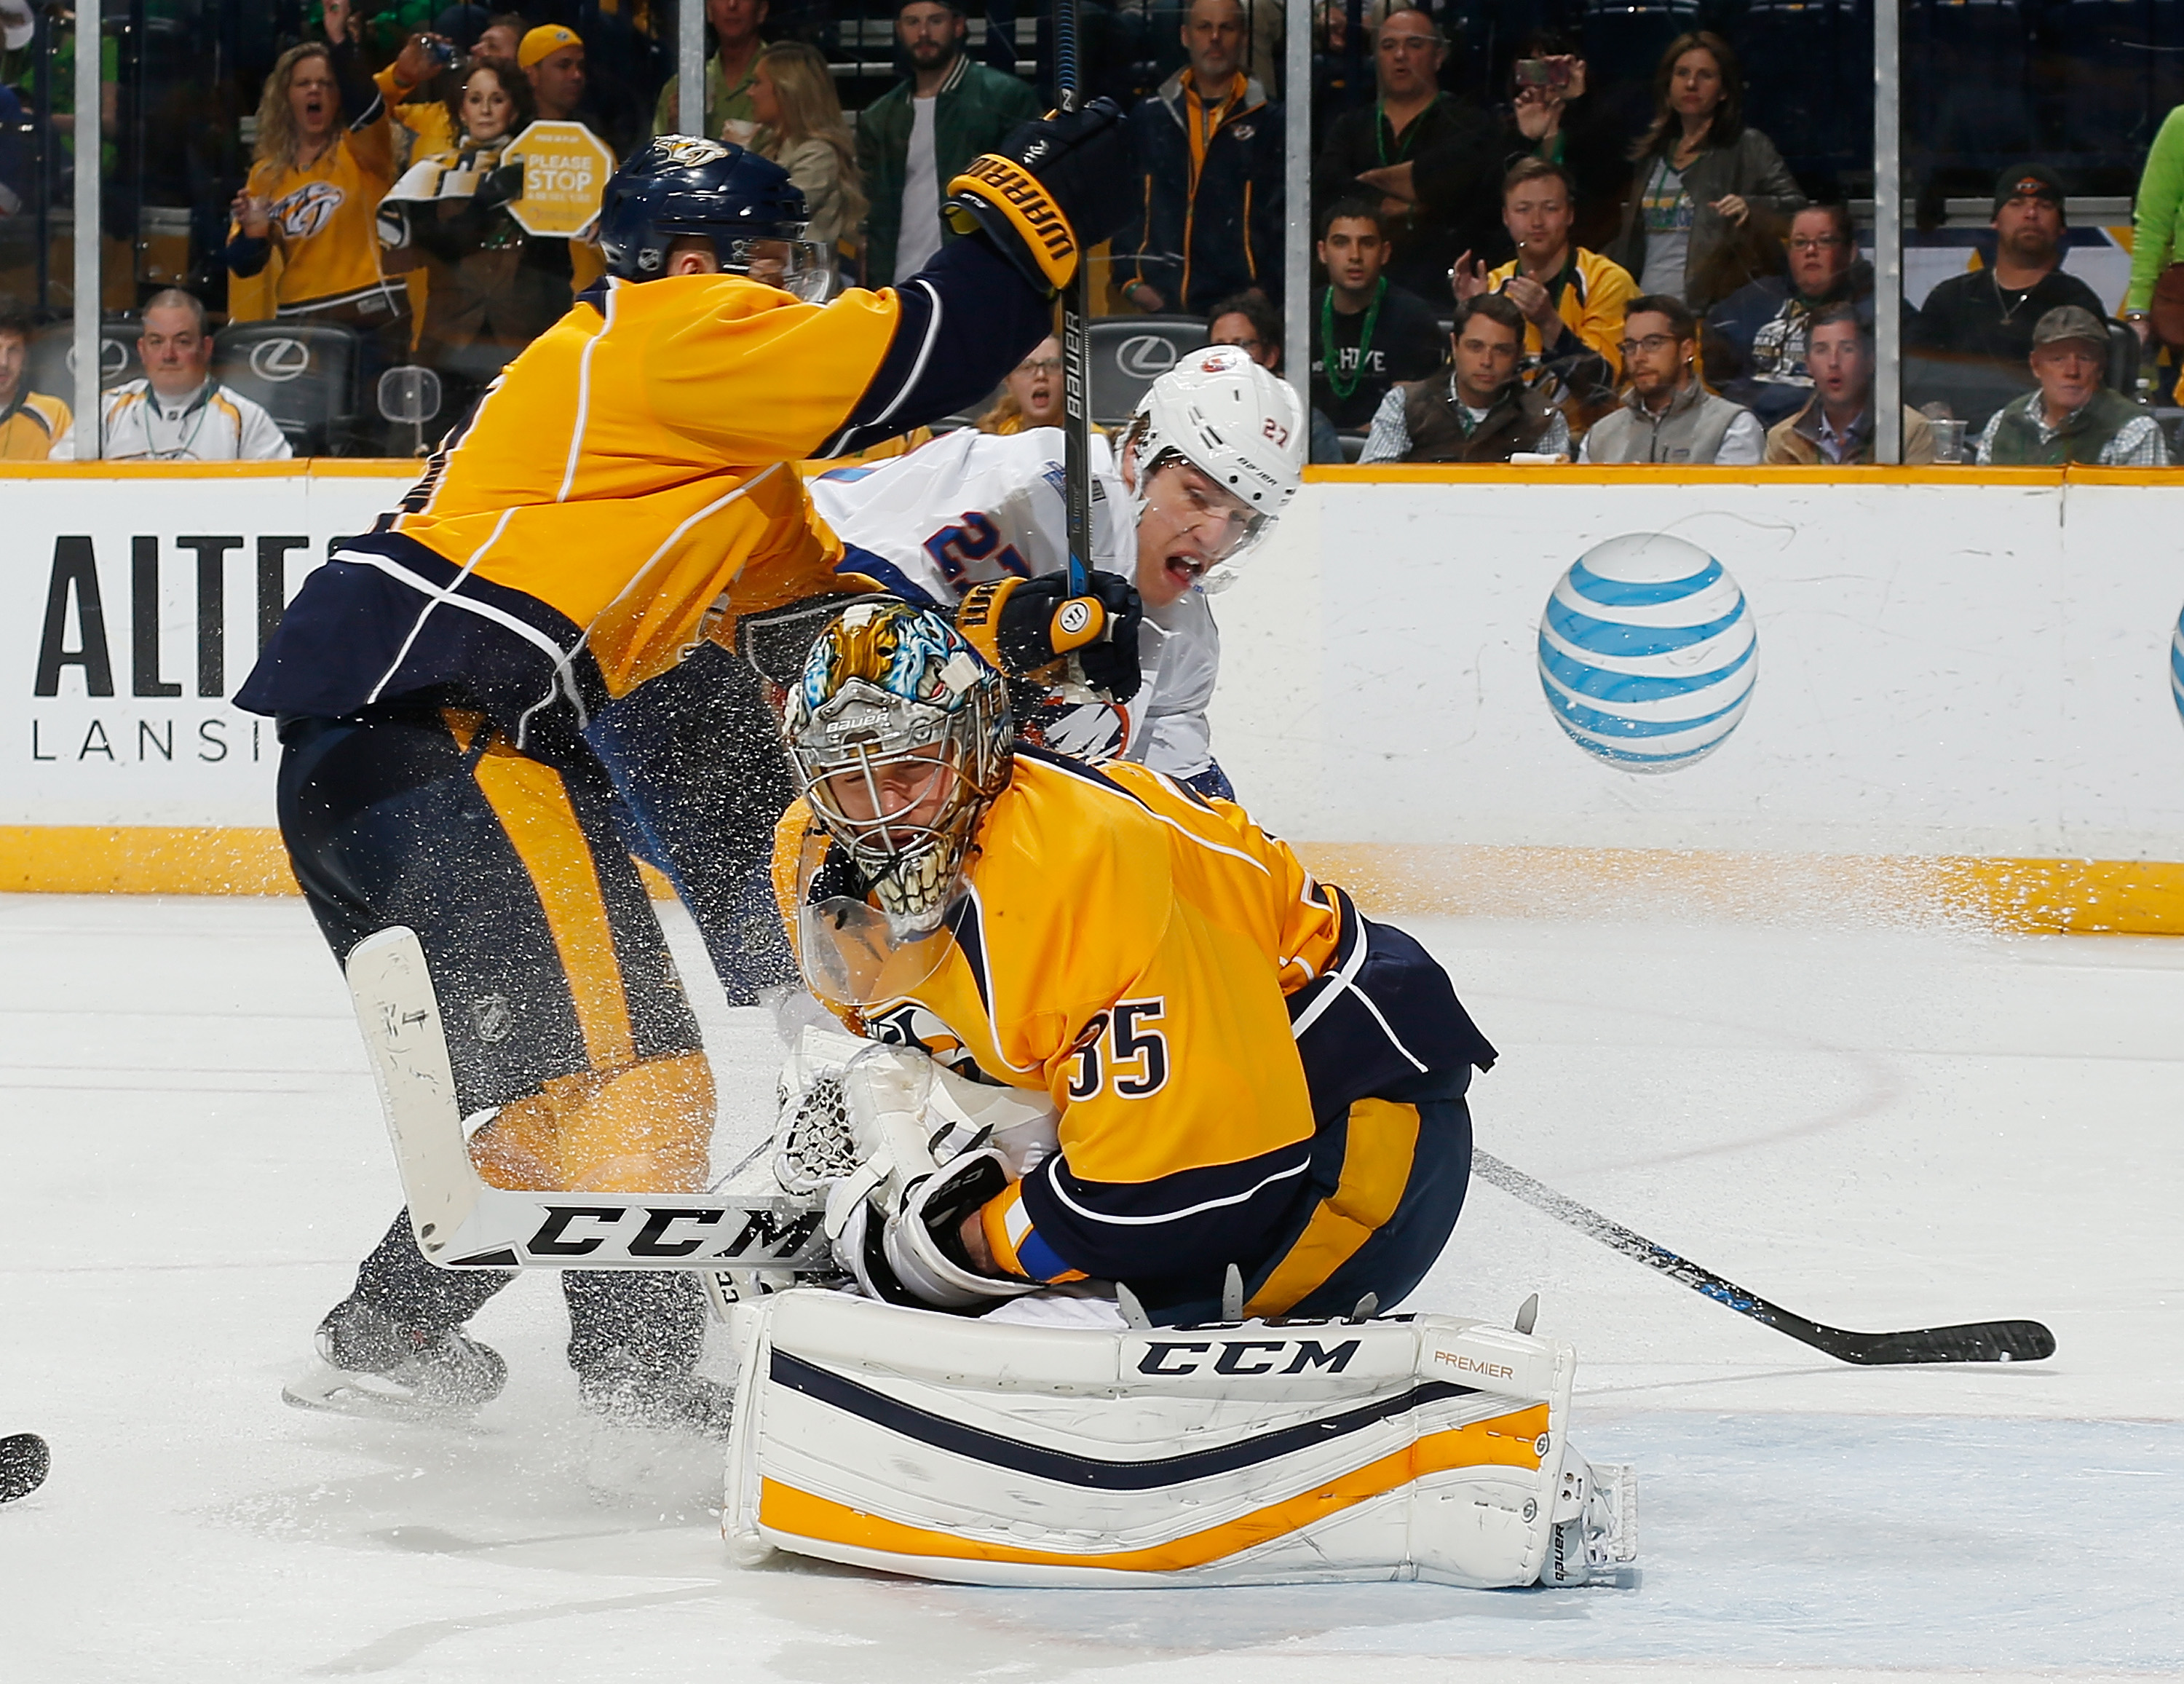 NASHVILLE, TN - MARCH 17: Pekka Rinne #35 of the Nashville Predators makes the save against Anders Lee #27 of the New York Islanders during an NHL game at Bridgestone Arena on March 17, 2016 in Nashville, Tennessee. (Photo by John Russell/NHLI via Getty Images)